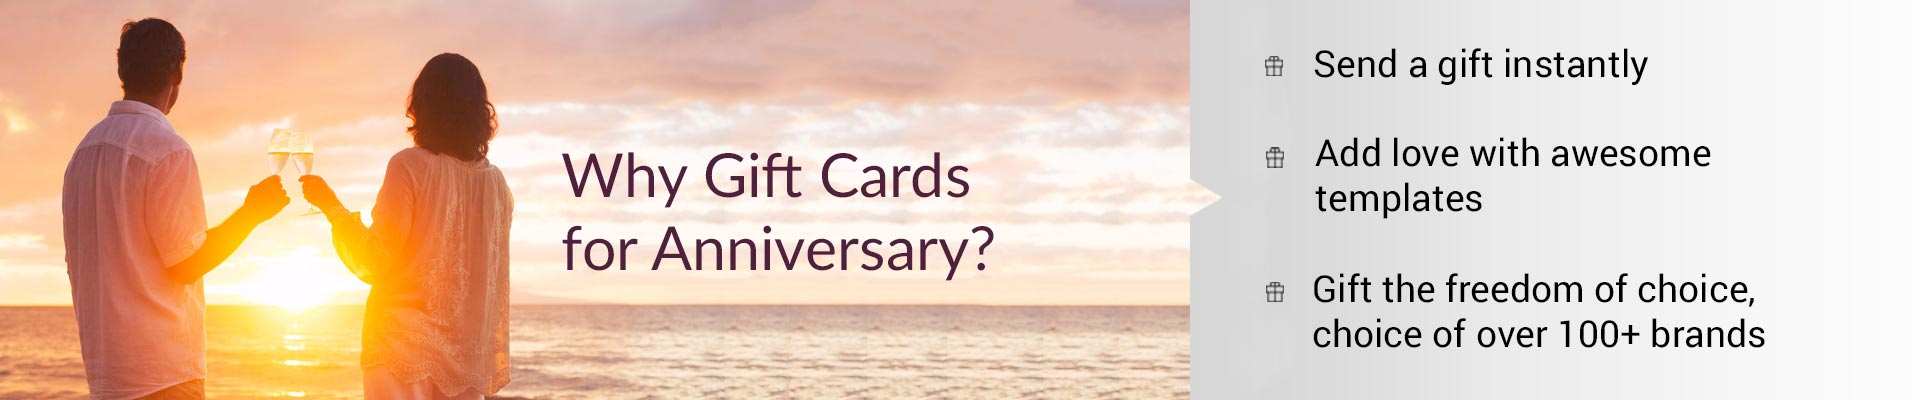 Anniversary gift cards the best gift for anniversary gift cards for anniversary negle Image collections